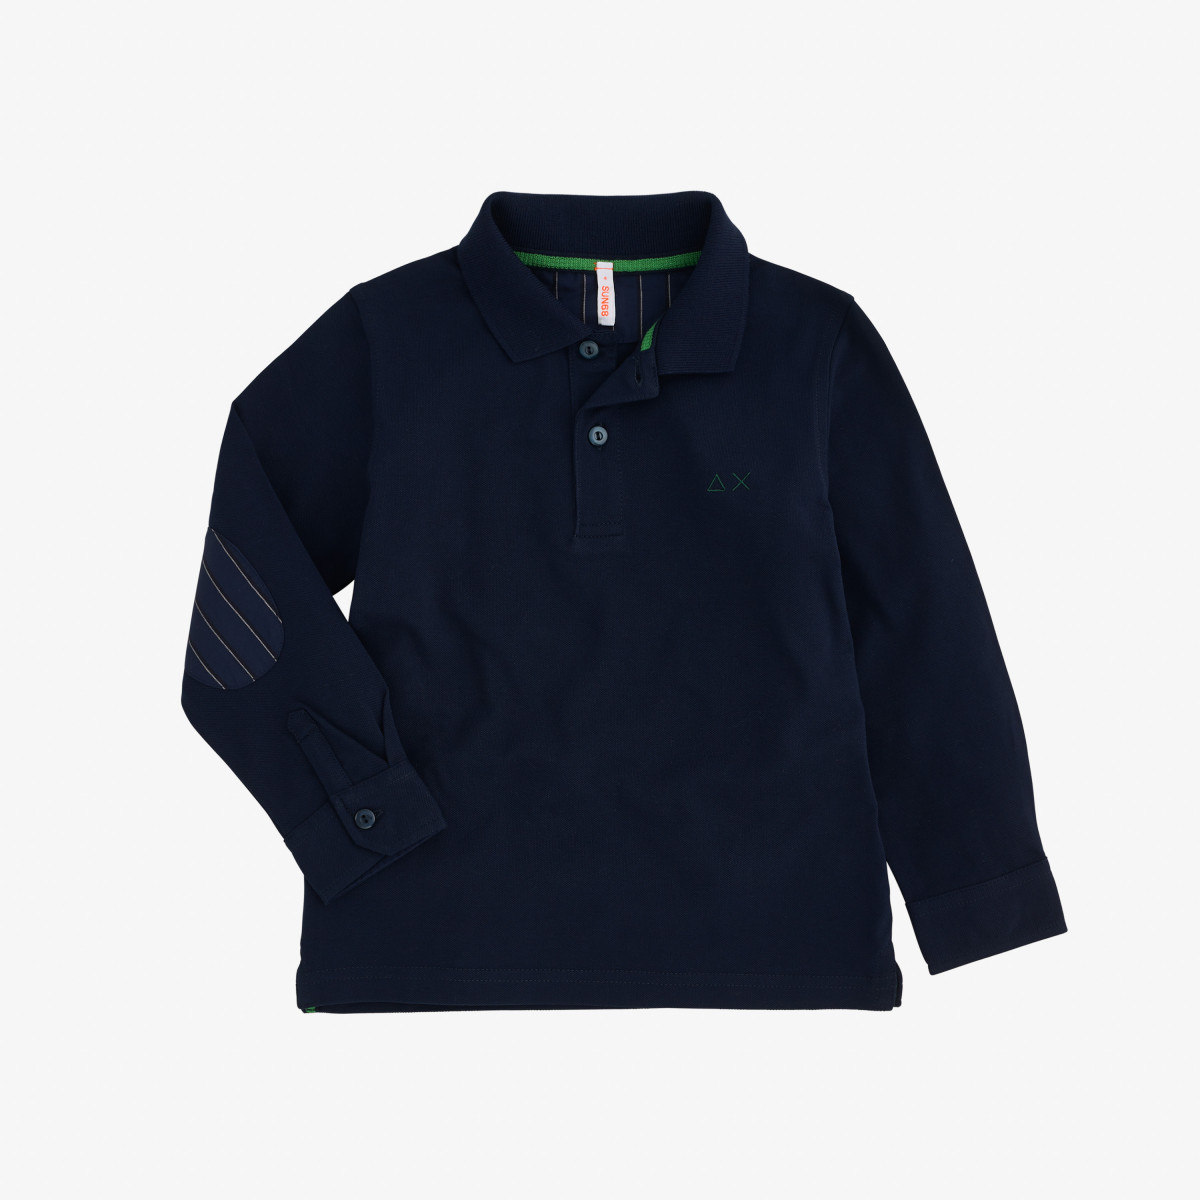 BOY'S POLO SHIRT FABRIC ELBOW L/S NAVY BLUE